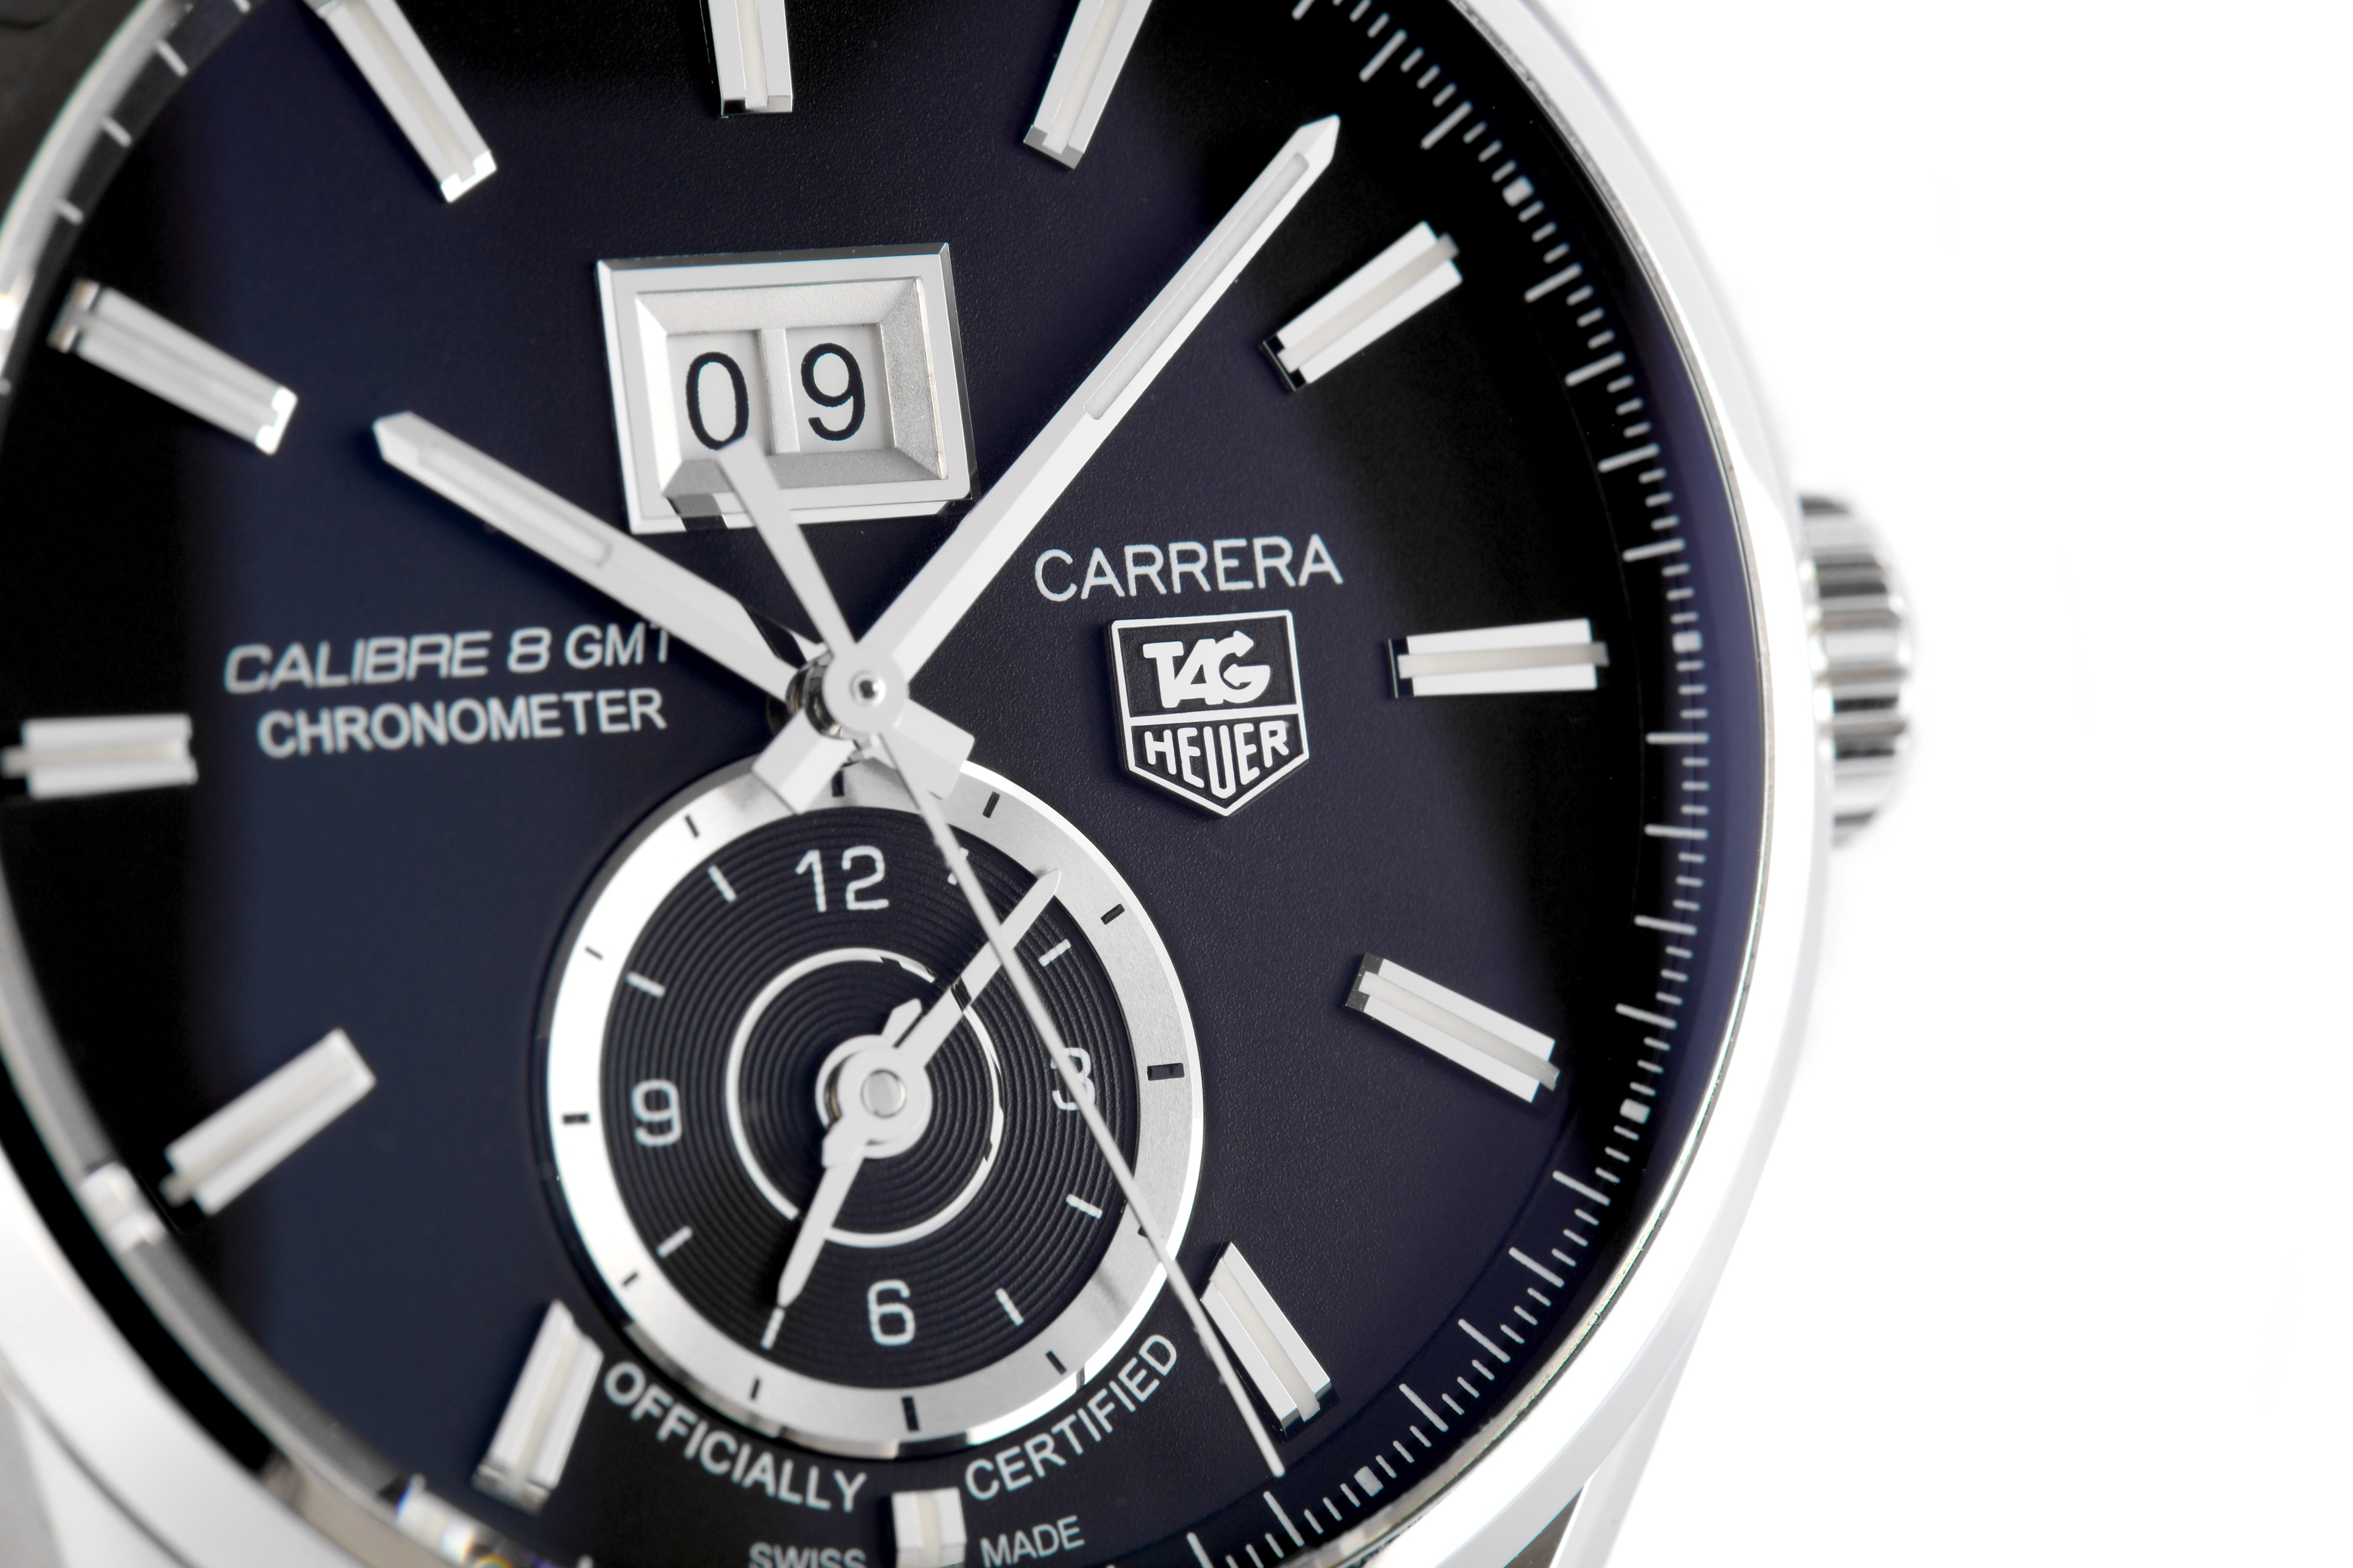 TAG HEUER - Image 4 of 7